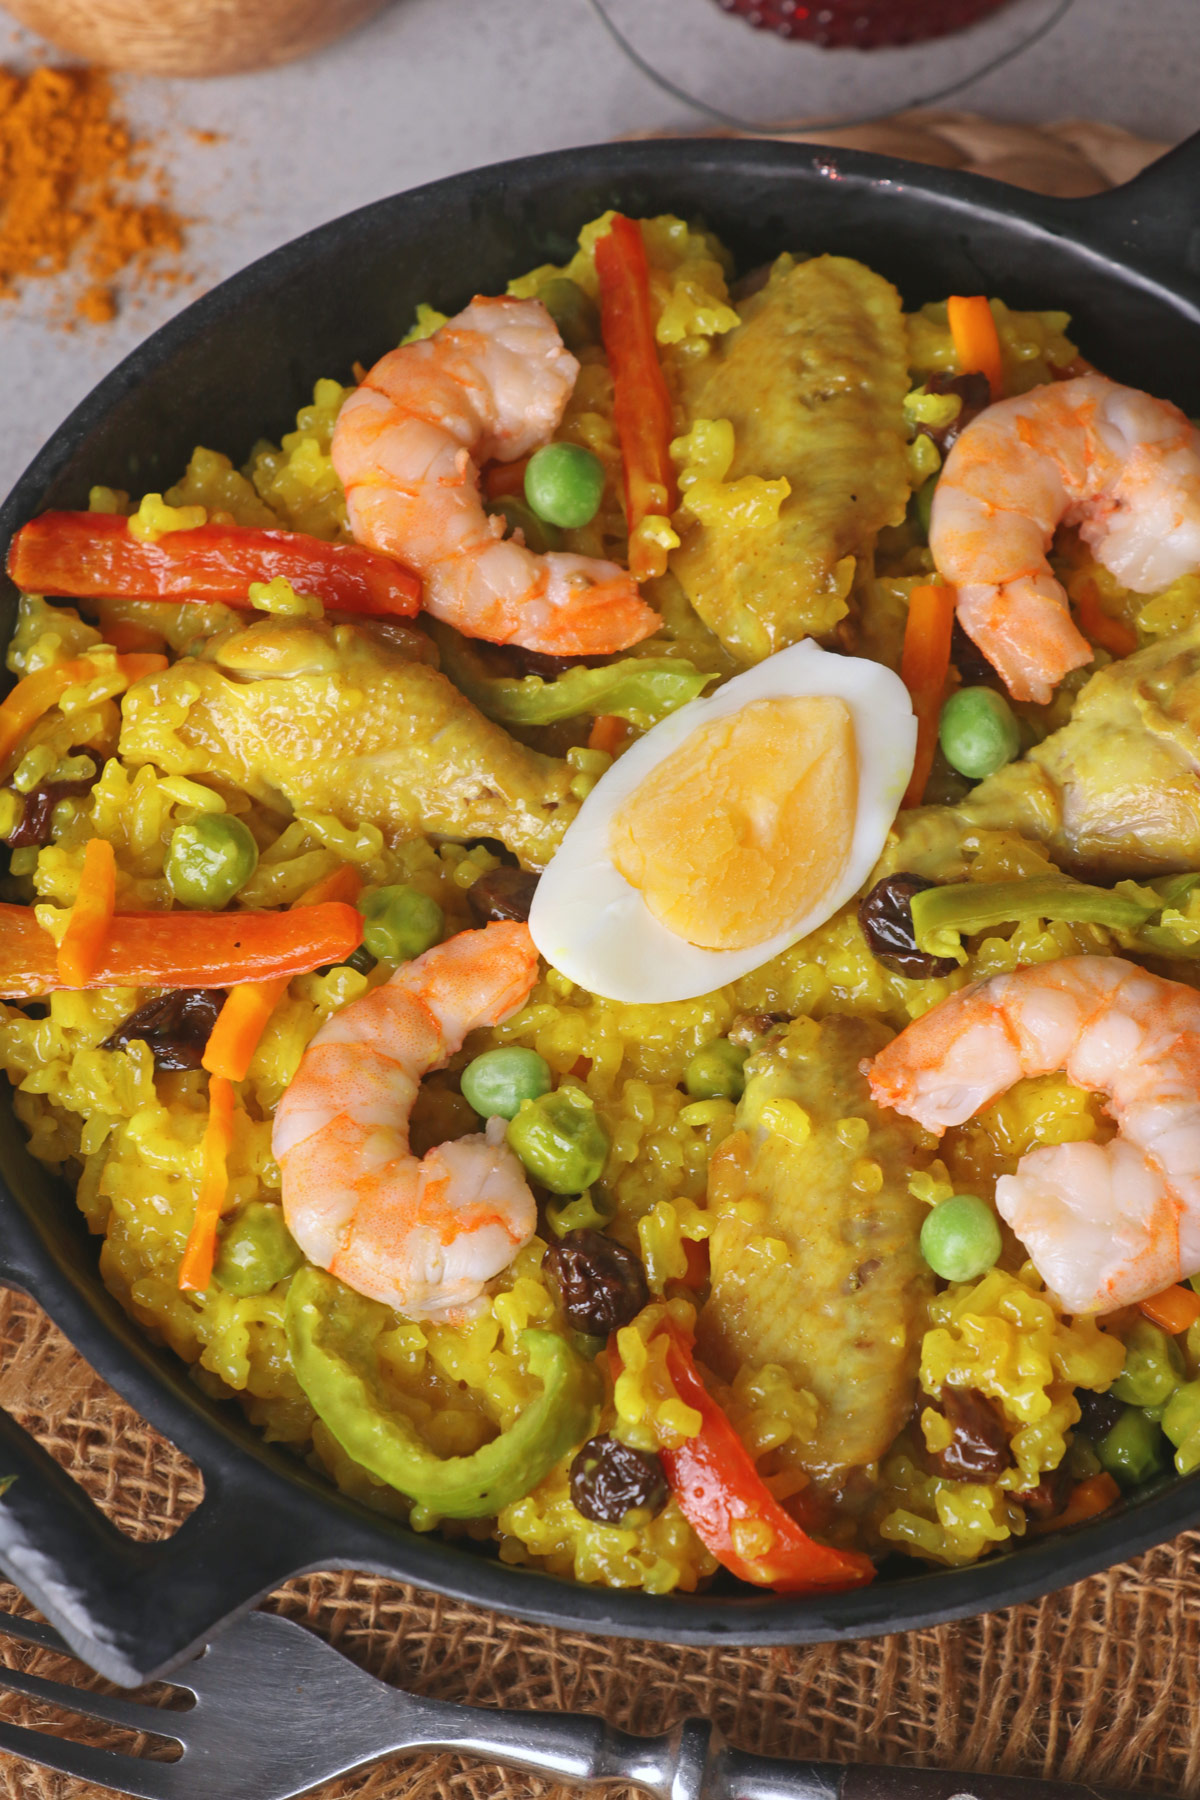 Arroz Valenciana or Bringhe is a flavorful all-in-one Filipino dish from glutinous rice cooked in coconut milk and seasoned with Turmeric or yellow ginger. | www.foxyfolksy.com